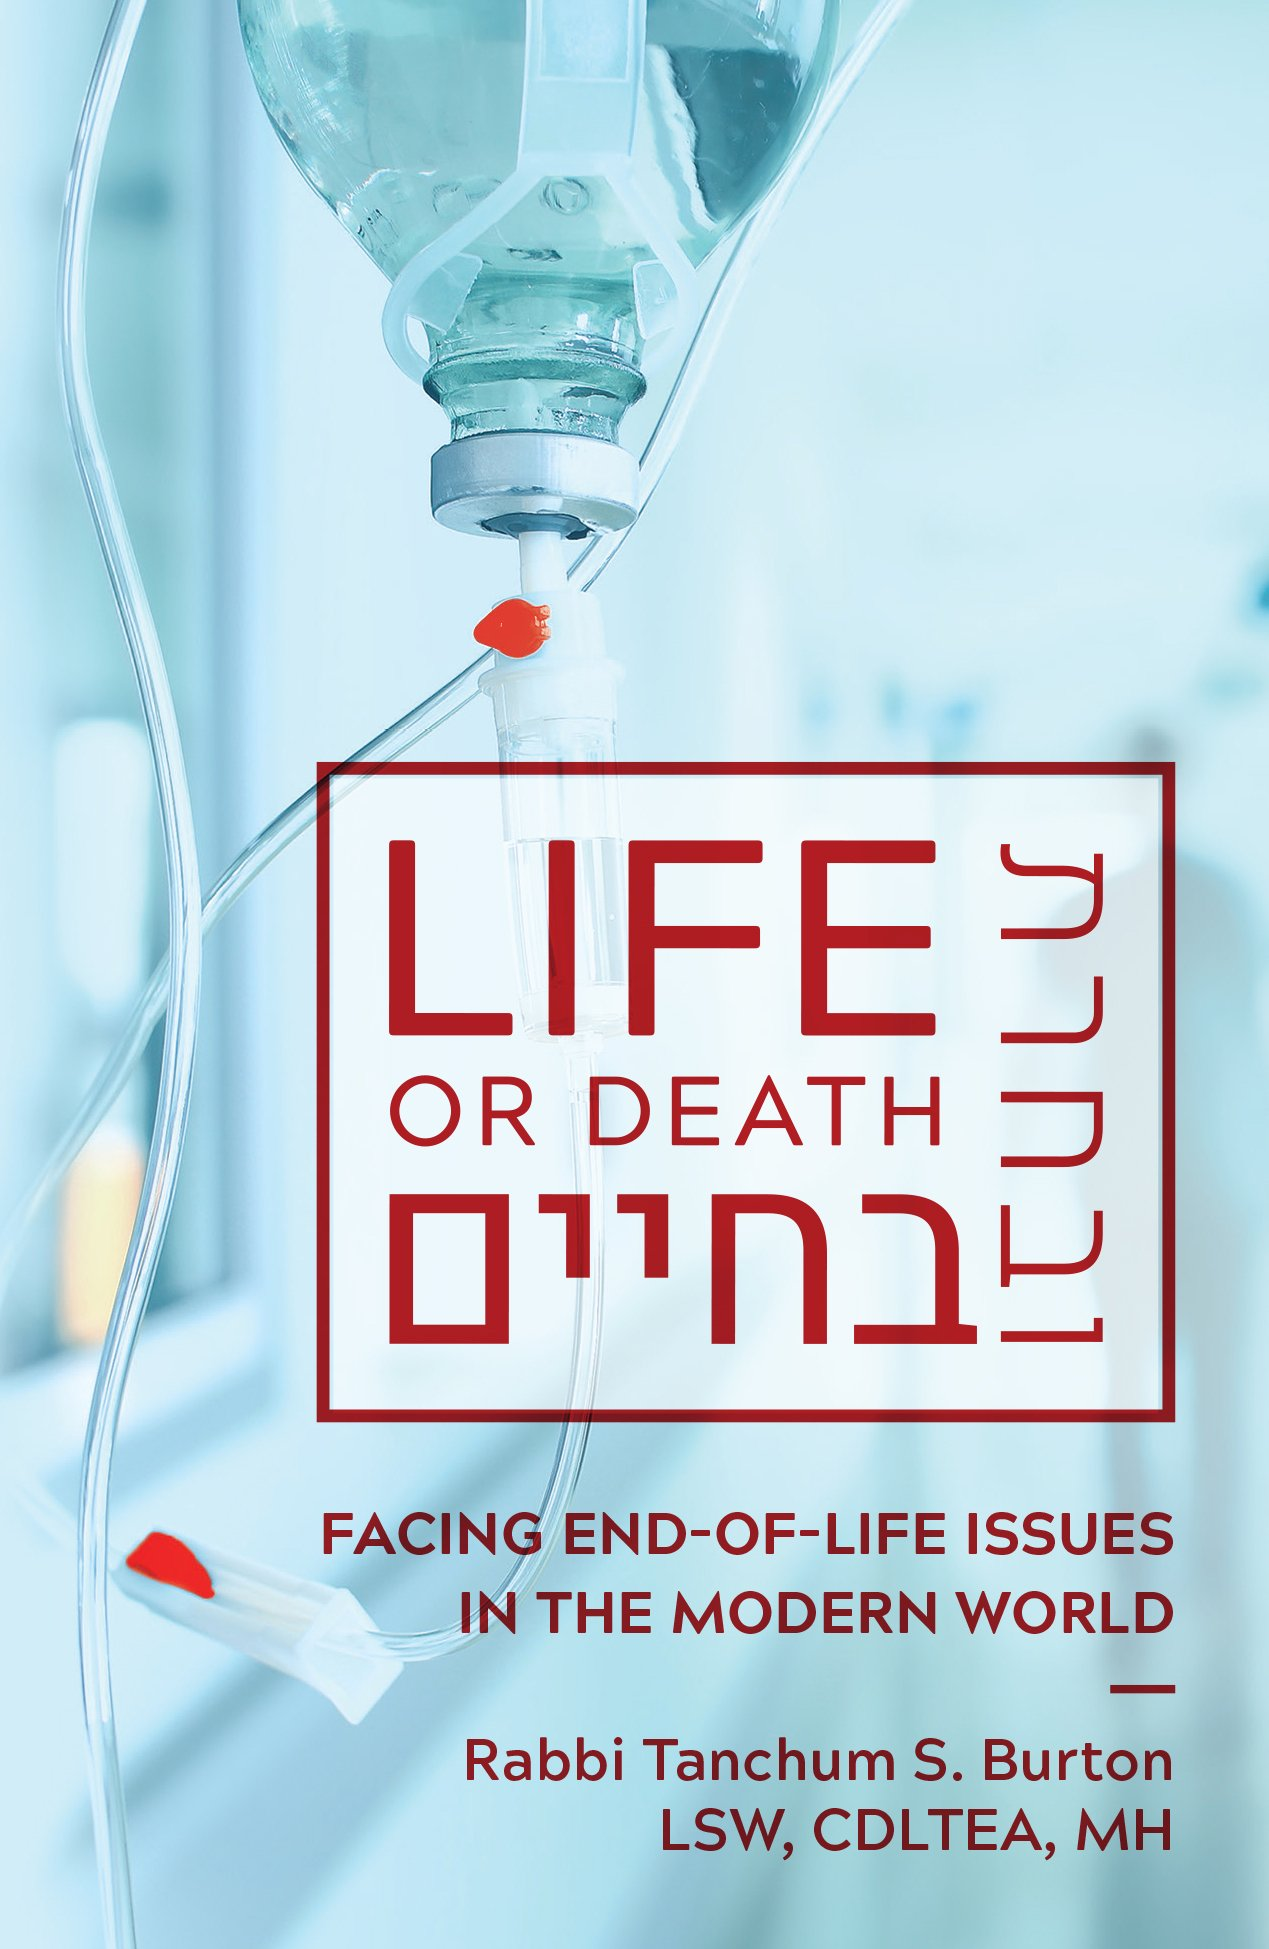 Life or Death:Facing End-of-Life Issues in the